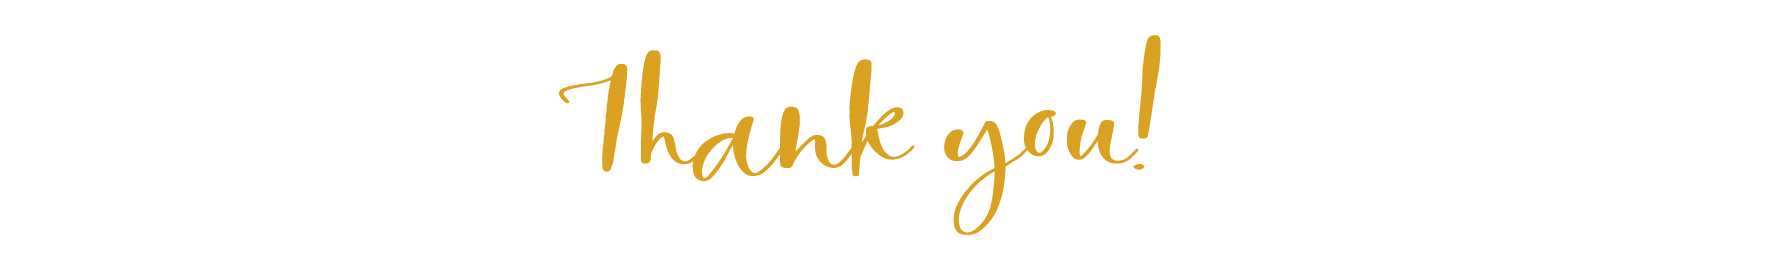 Thank-You-Header-01-01.png